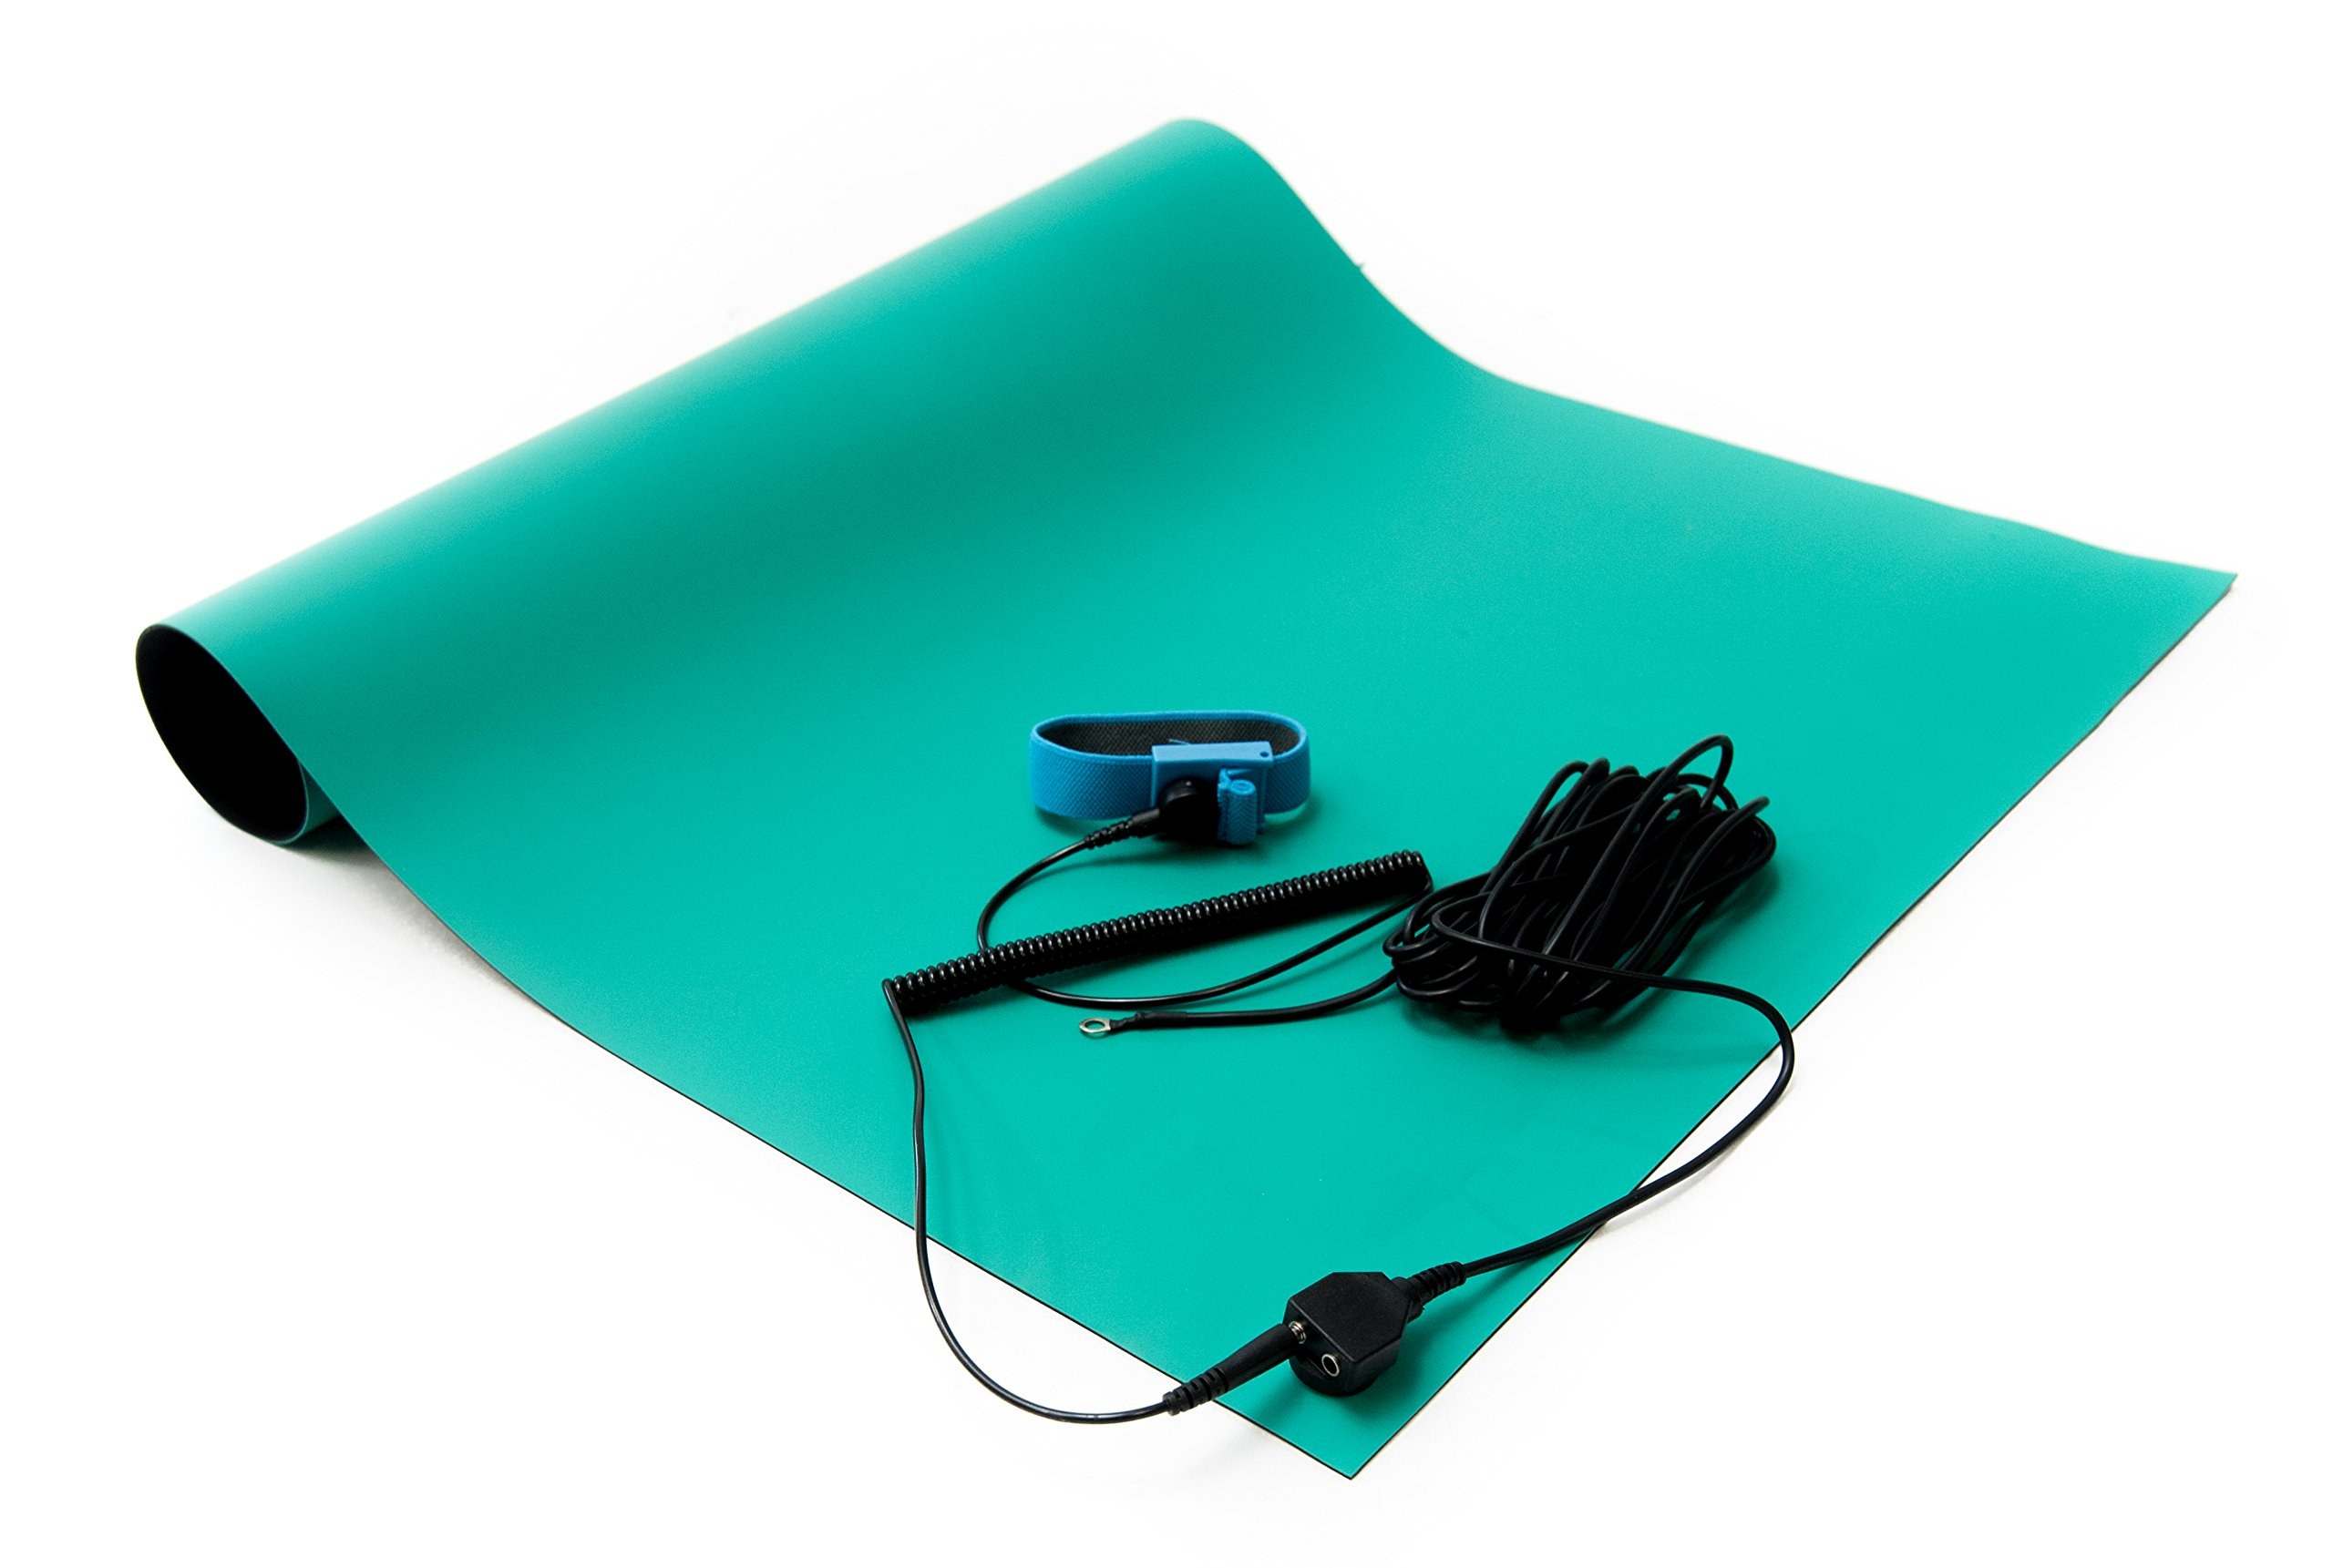 Bertech Rubber ESD Soldering Mat Kit with a Wrist Strap and Grounding Cord, 2' Wide x 4' Long, Green